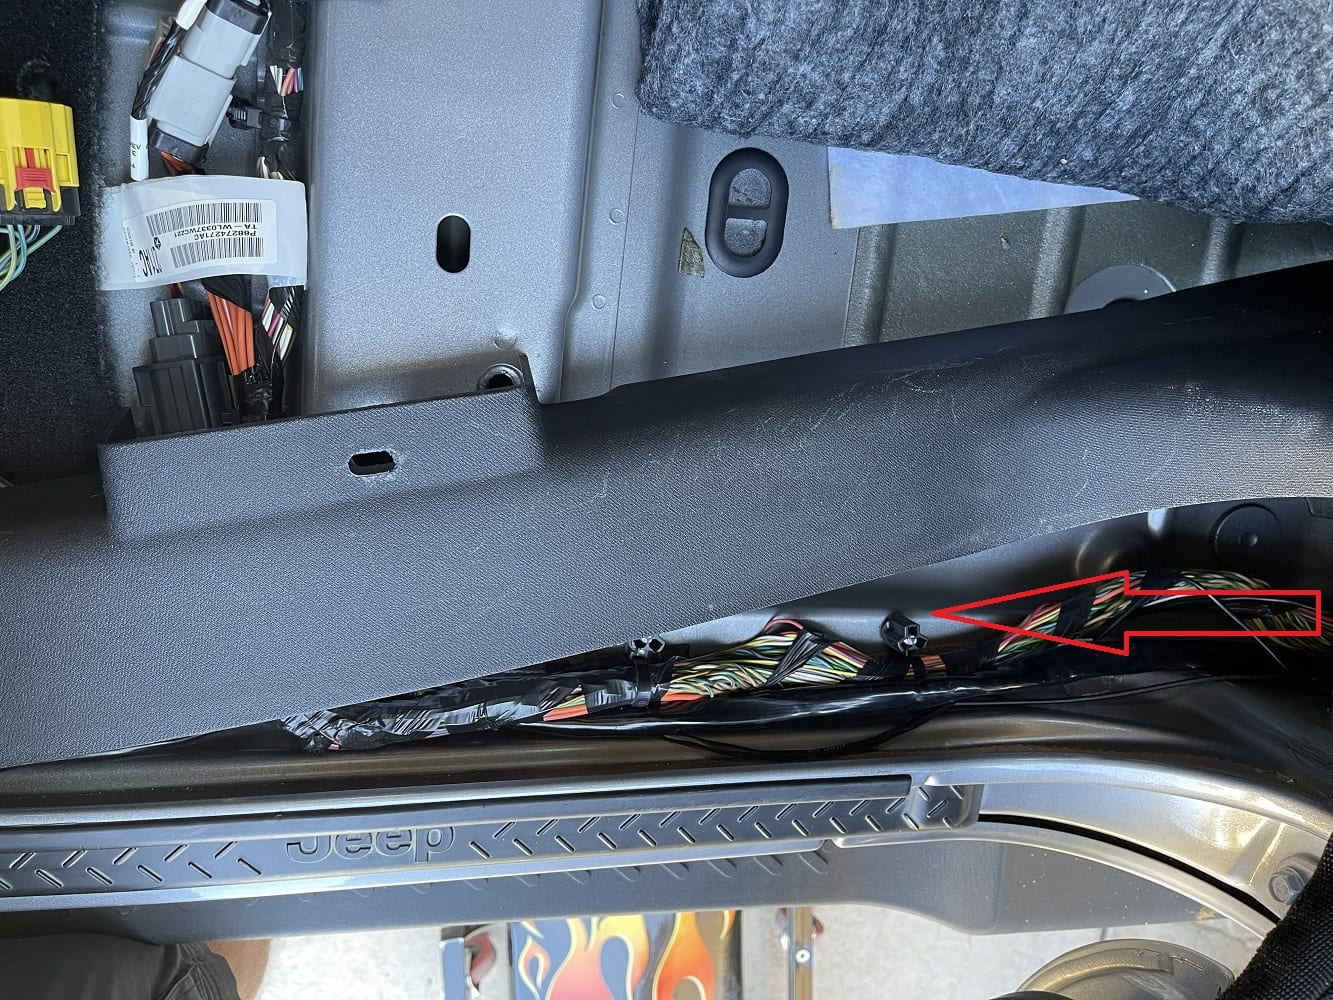 Run the wire to the area under the JK Wrangler passenger seat